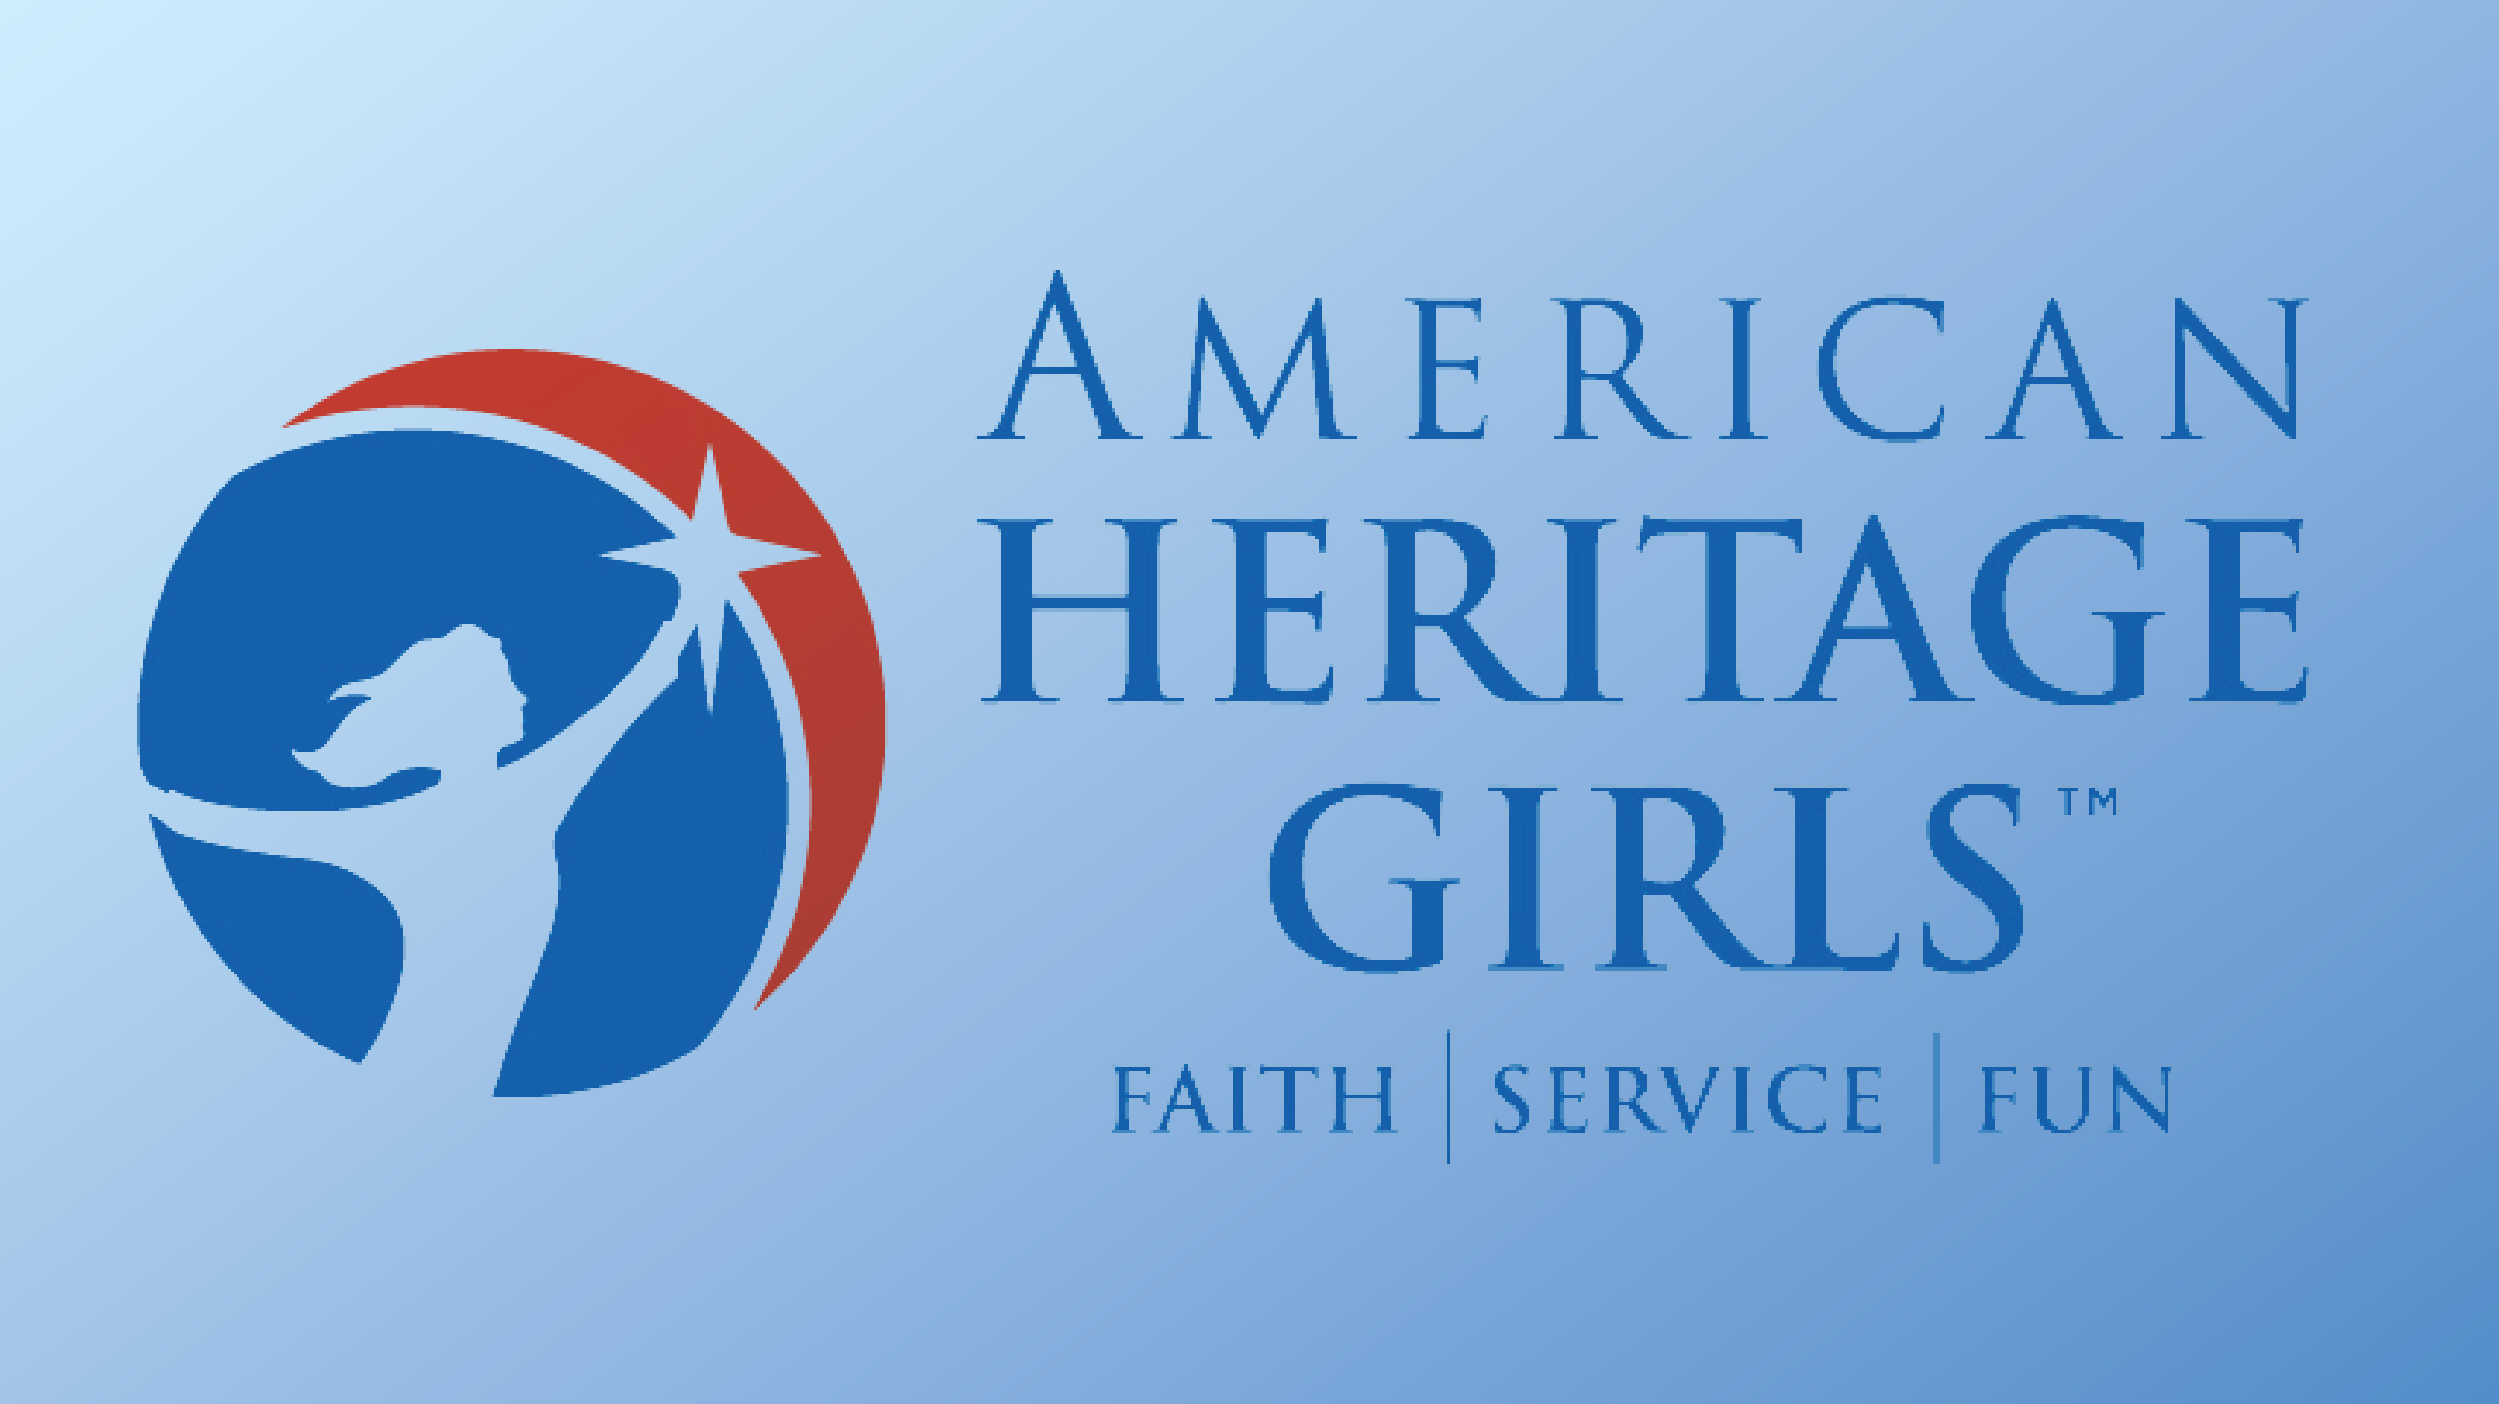 Trail life american heritage girls buttons 02